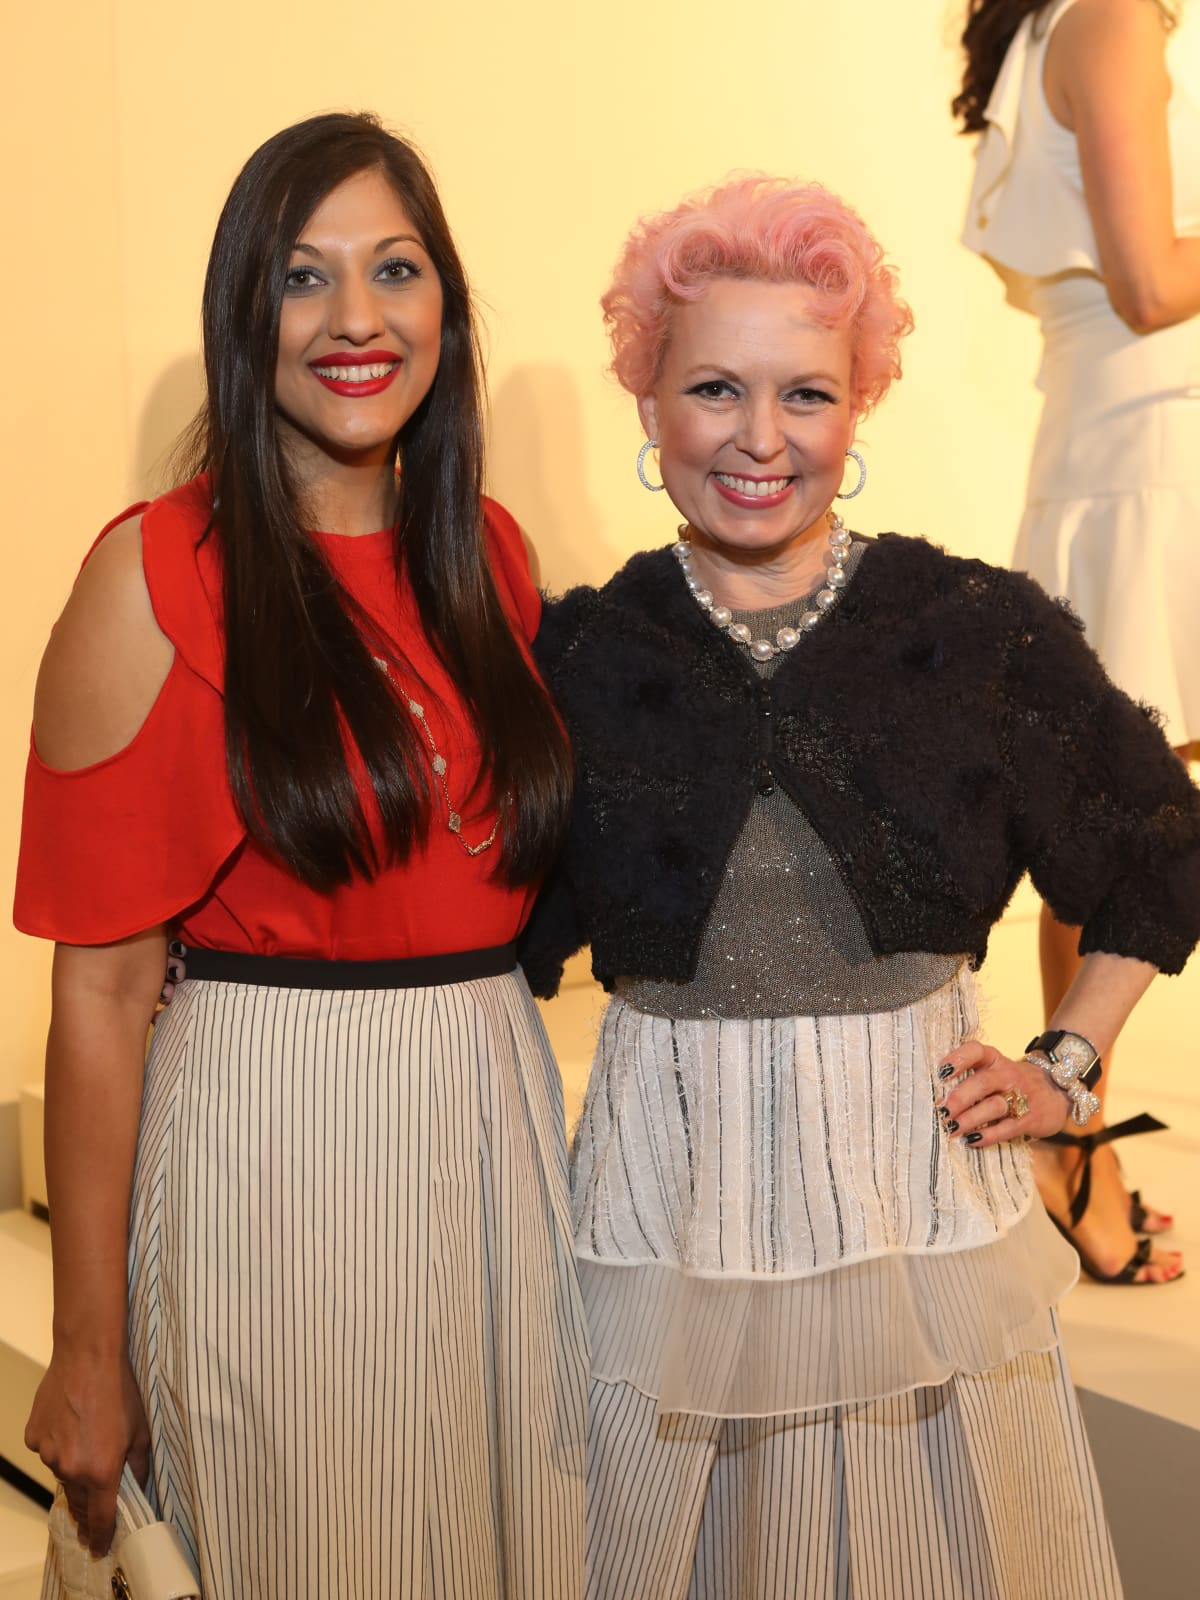 Sippi Khurana, Vivian Wise at Best Dressed Luncheon 2017